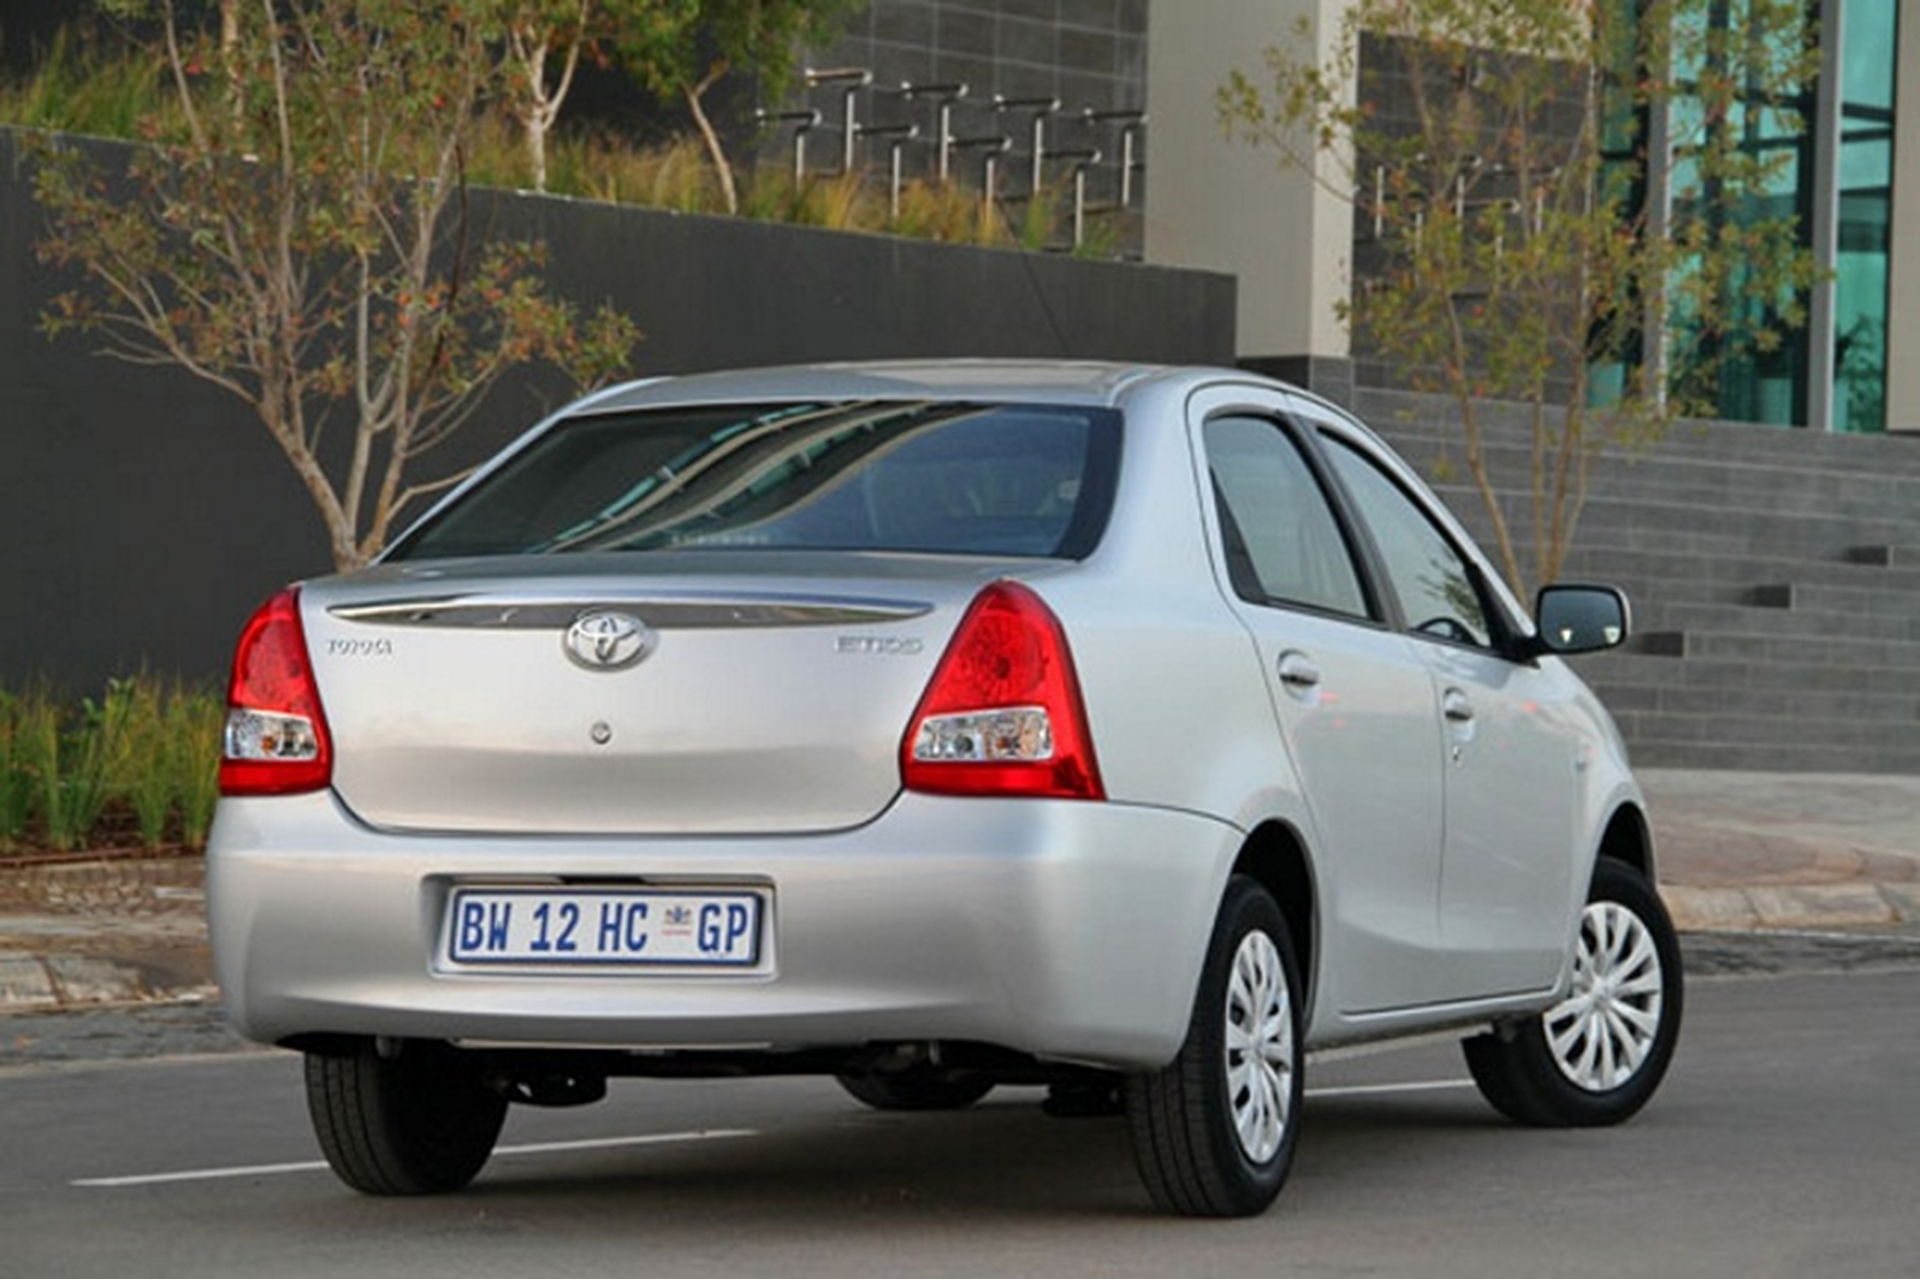 Toyota Etios South-Africa 2012